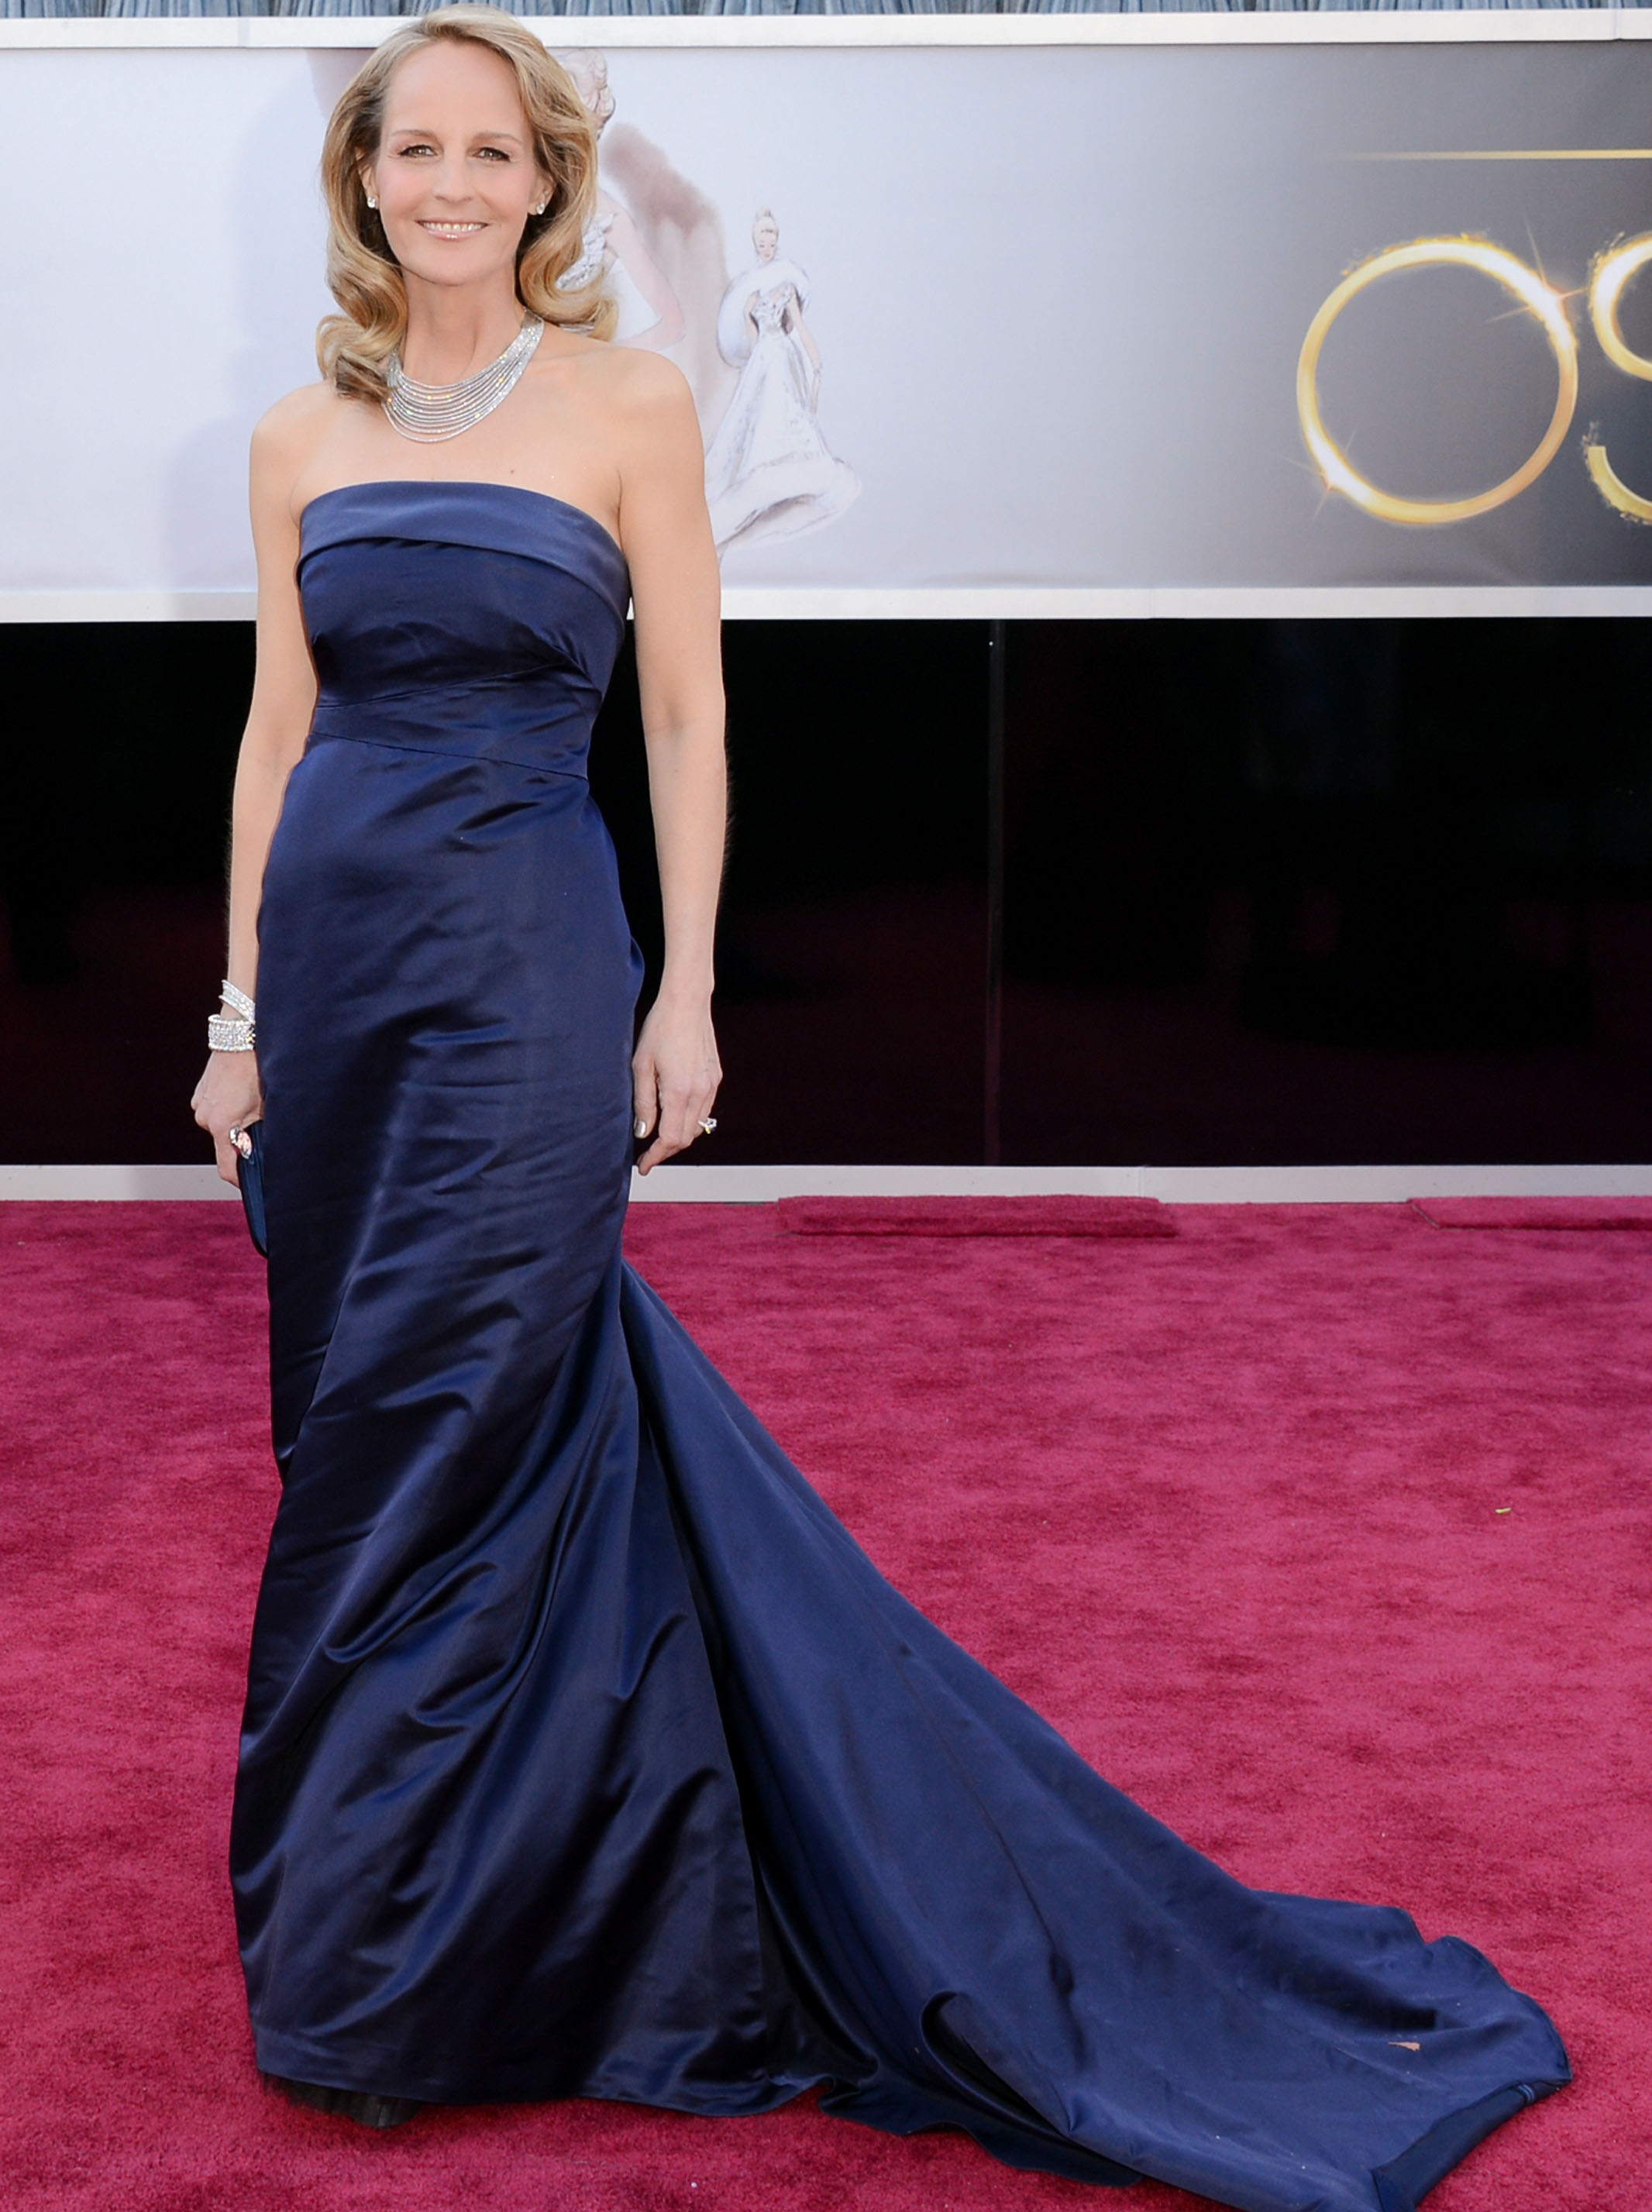 Helen Hunt's H&M Oscars dress took high street fashion to the red carpet